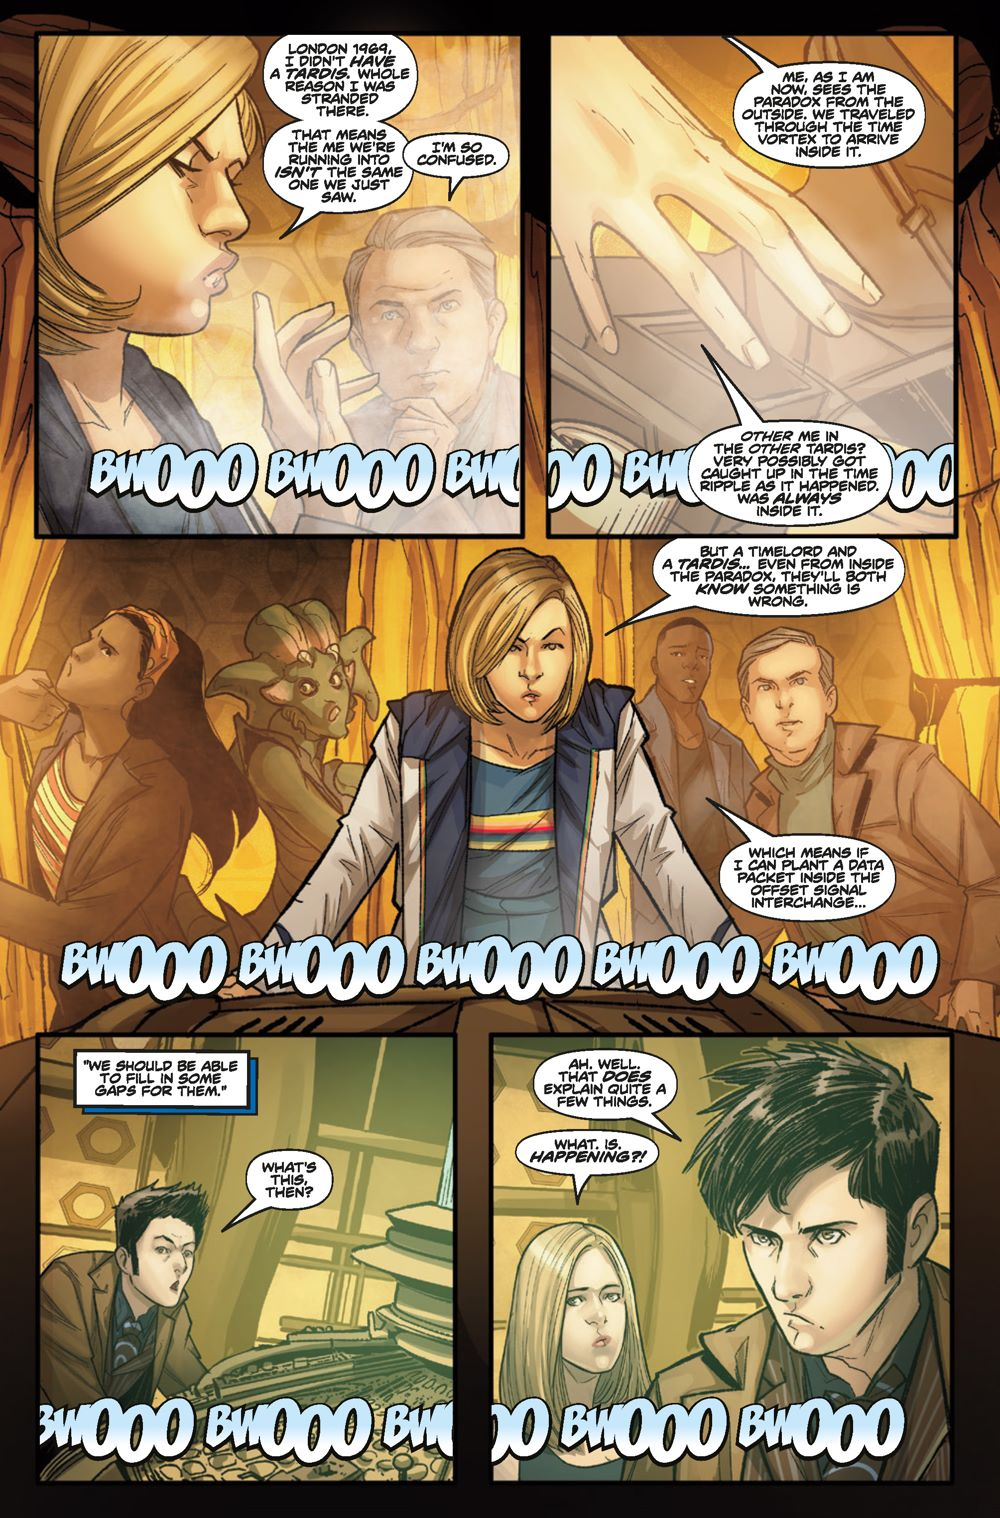 DW_3_02-32_INTERIORS_v3al_Page_2 ComicList Previews: DOCTOR WHO COMICS #3